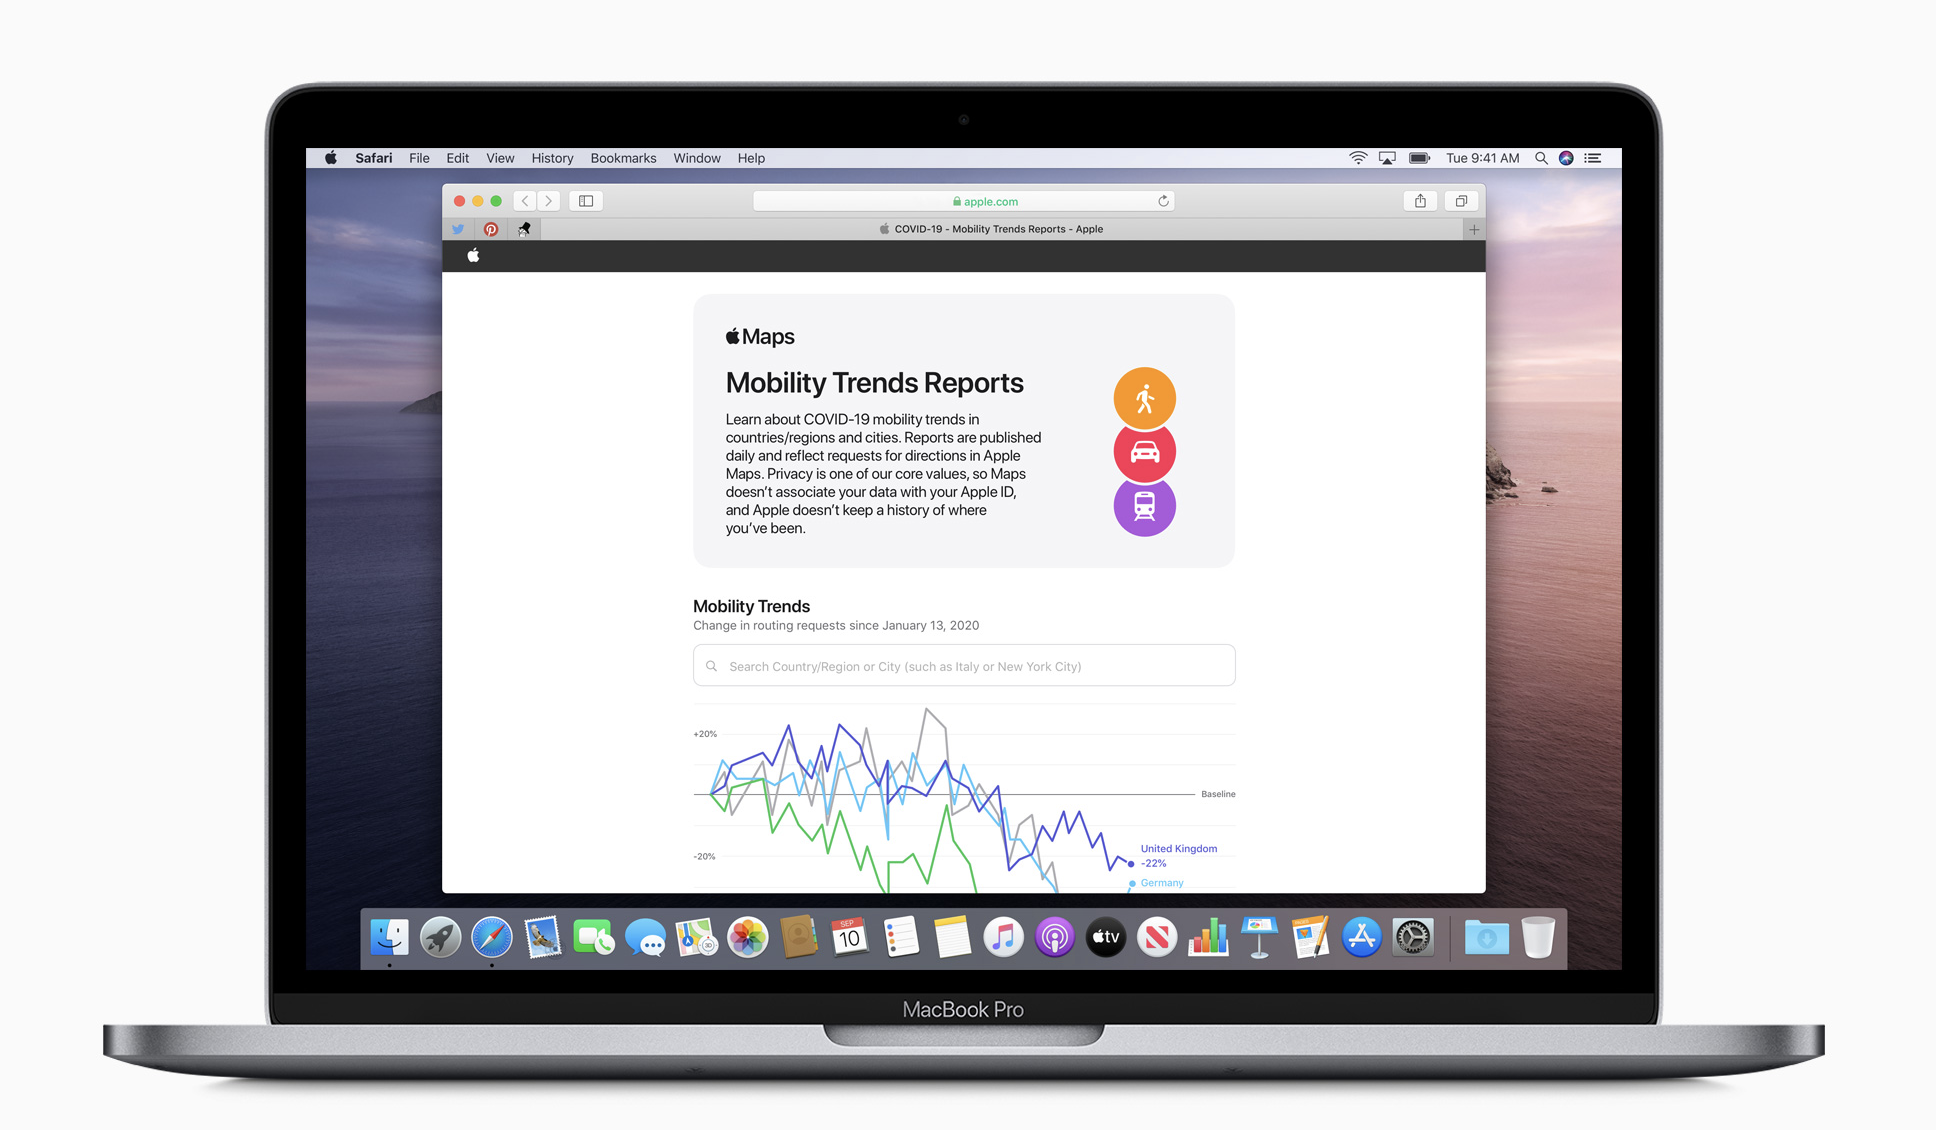 Apple makes mobility data available to aid COVID-19 efforts